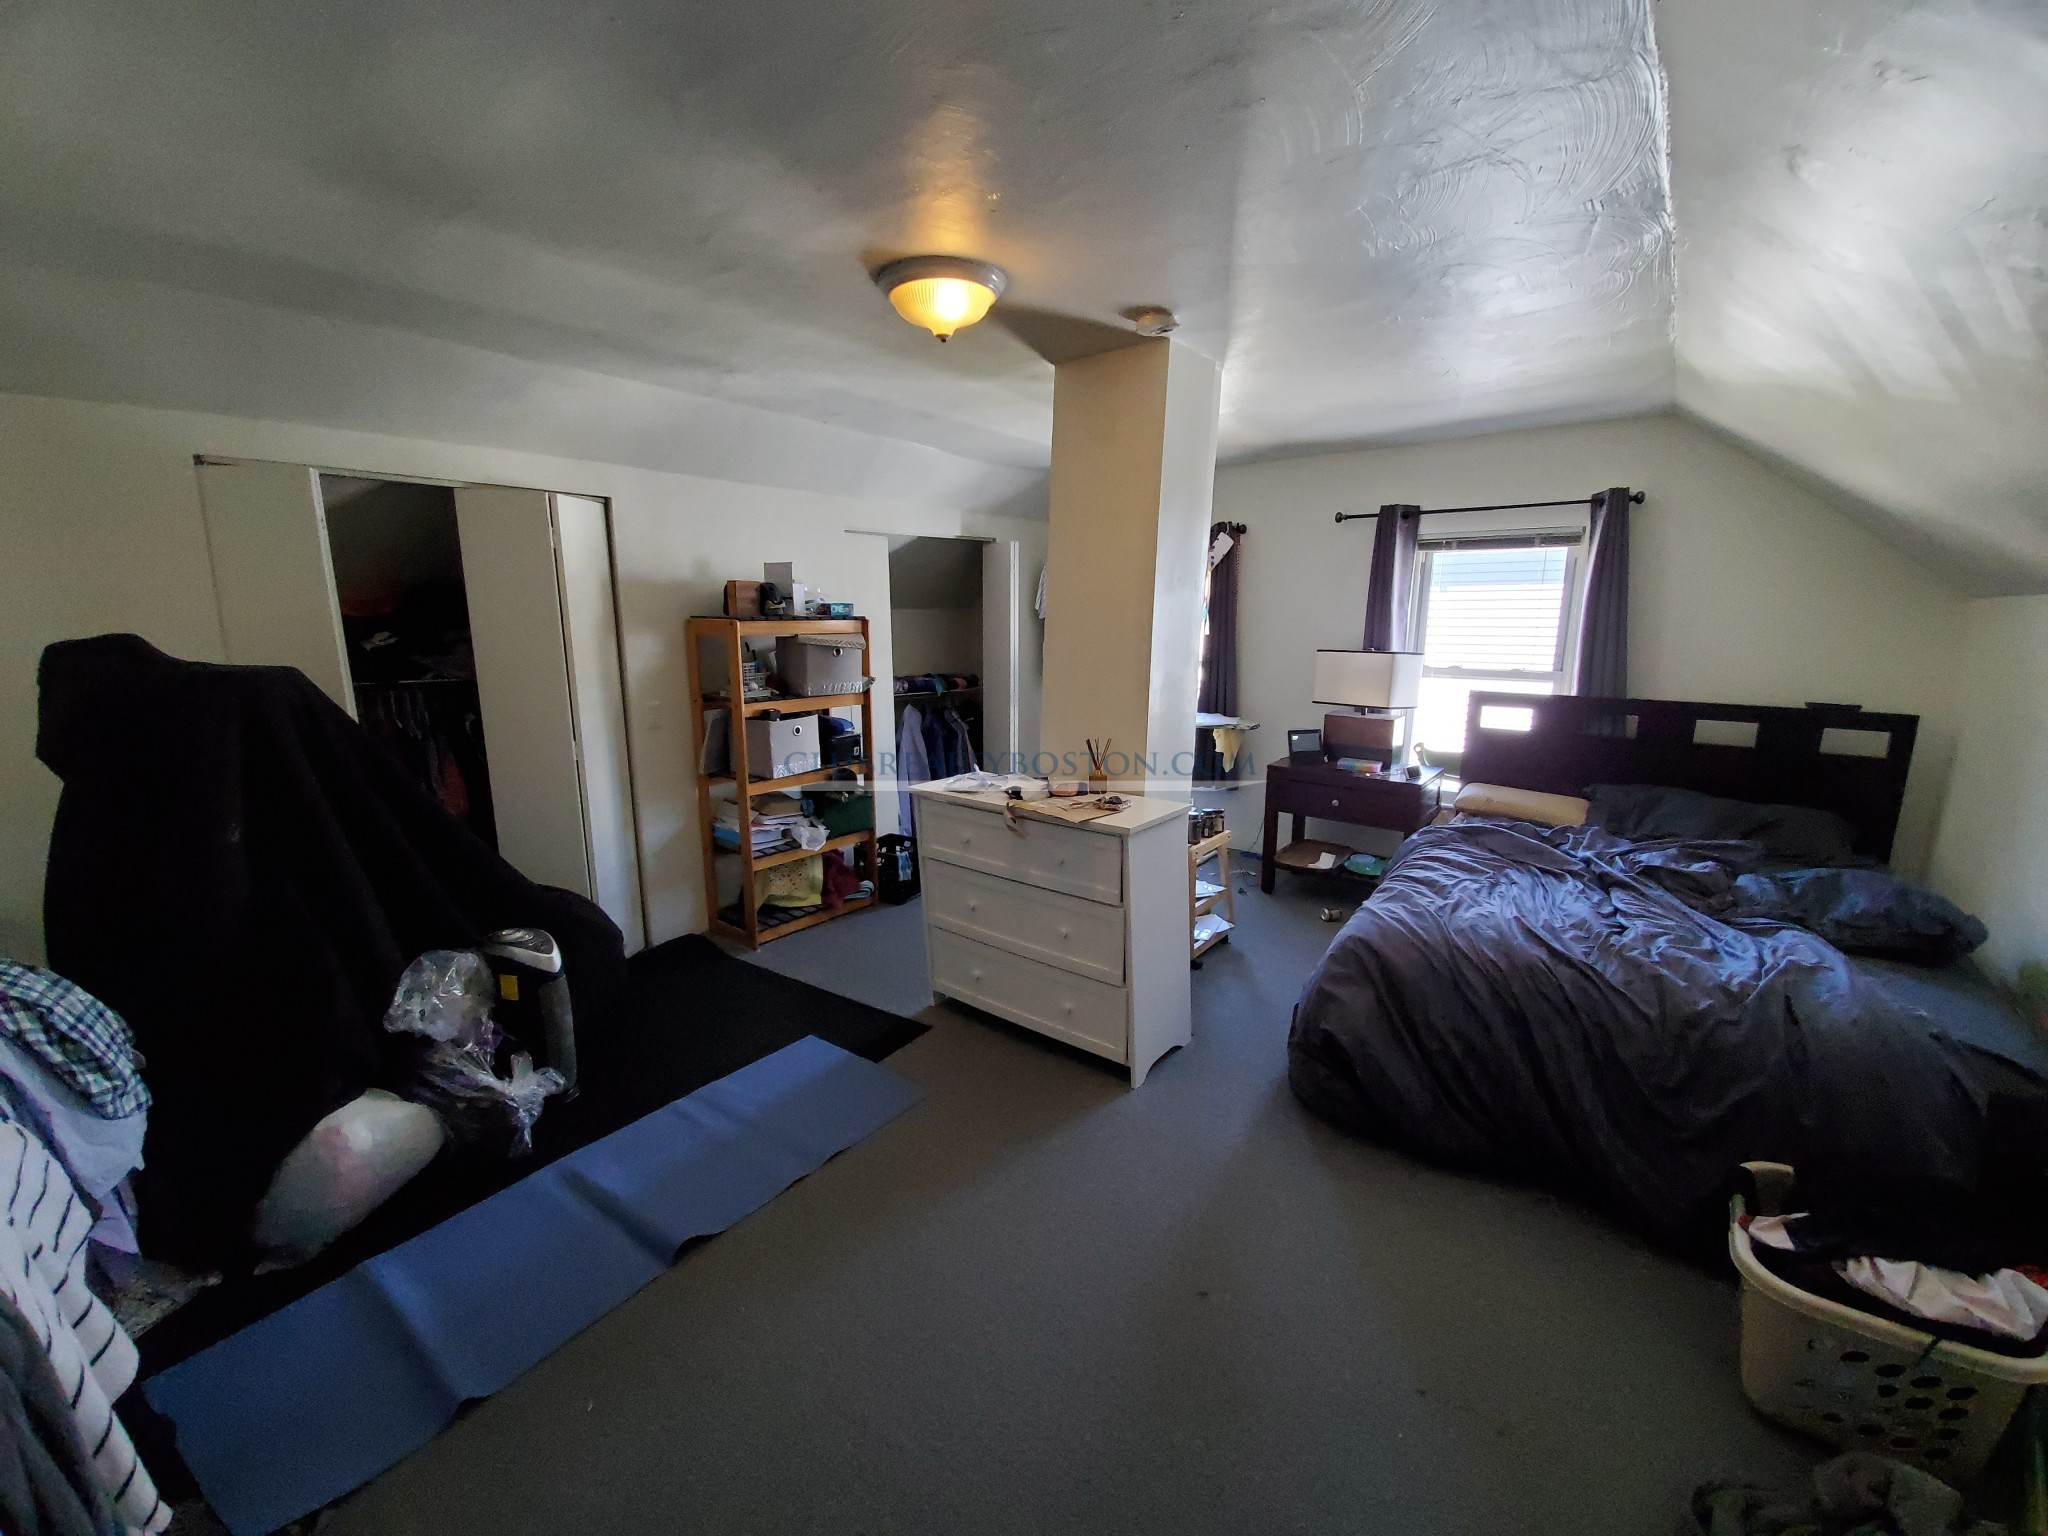 4 Beds, 1 Bath apartment in Waltham for $3,000